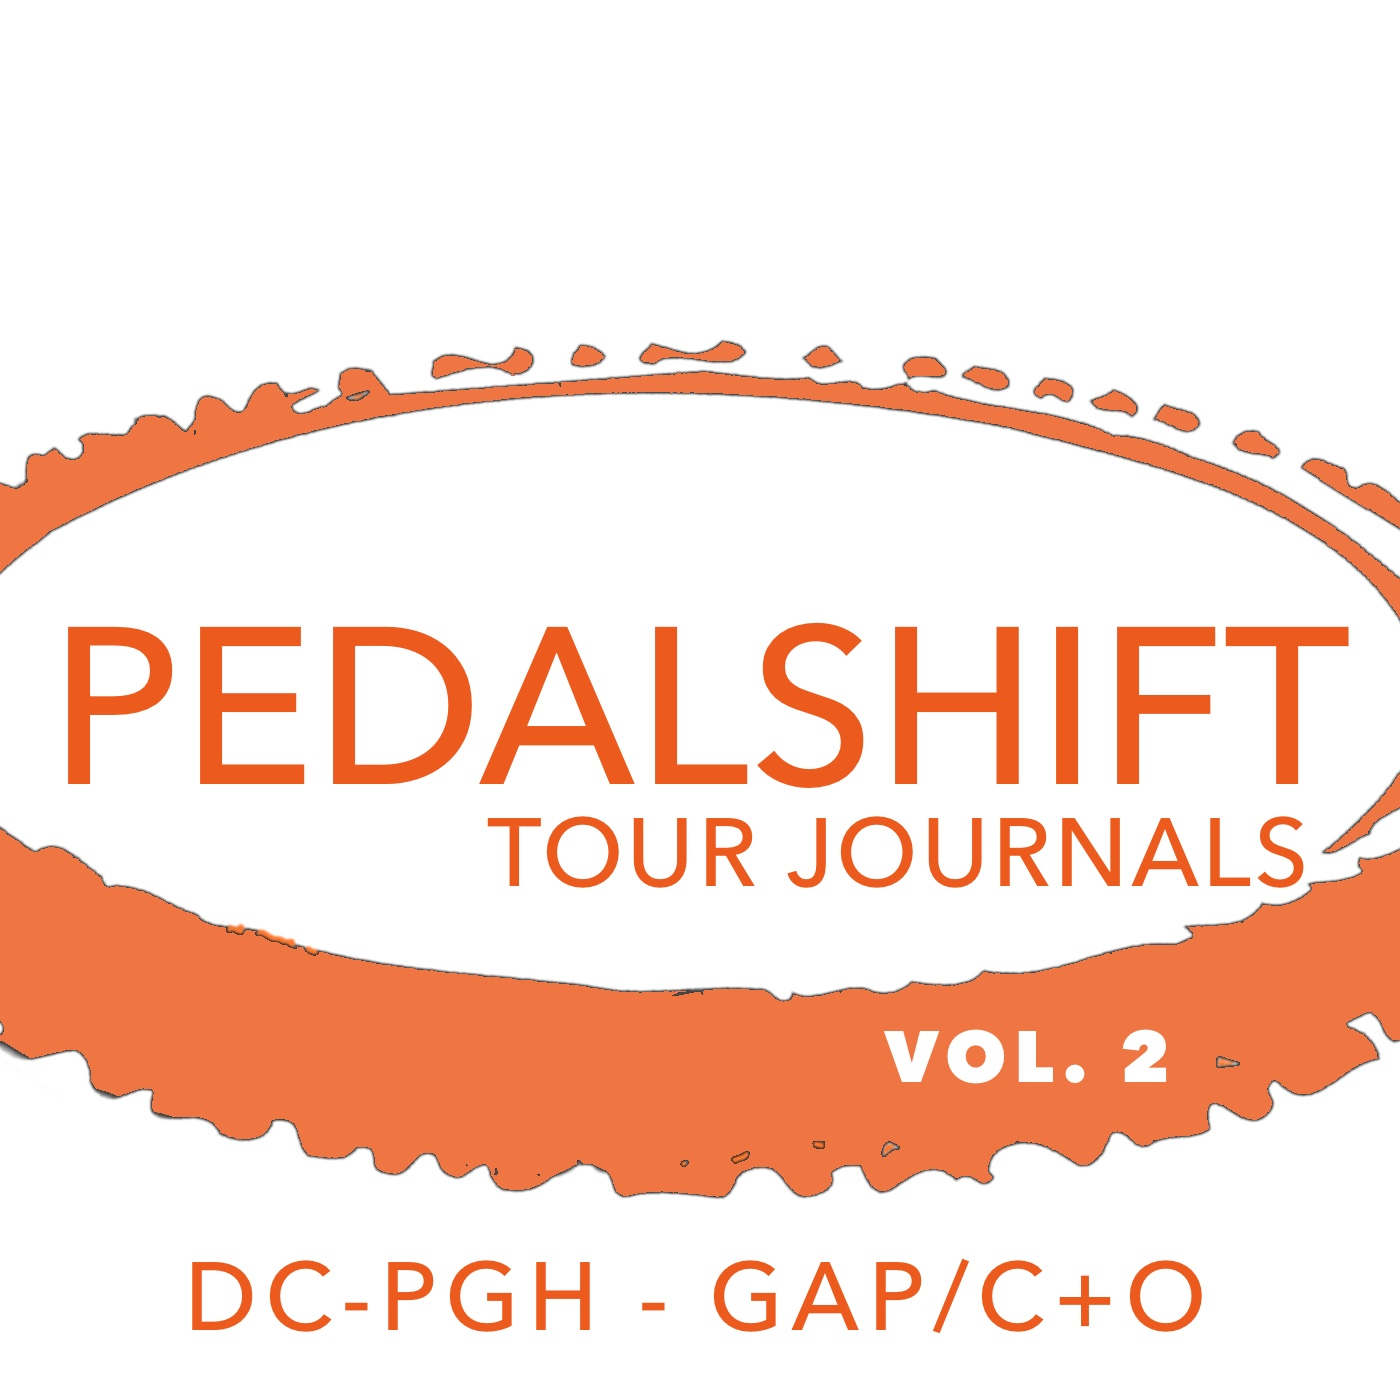 A C+O GAP bike tour from DC to Pittsburgh May 23-30, 2015.